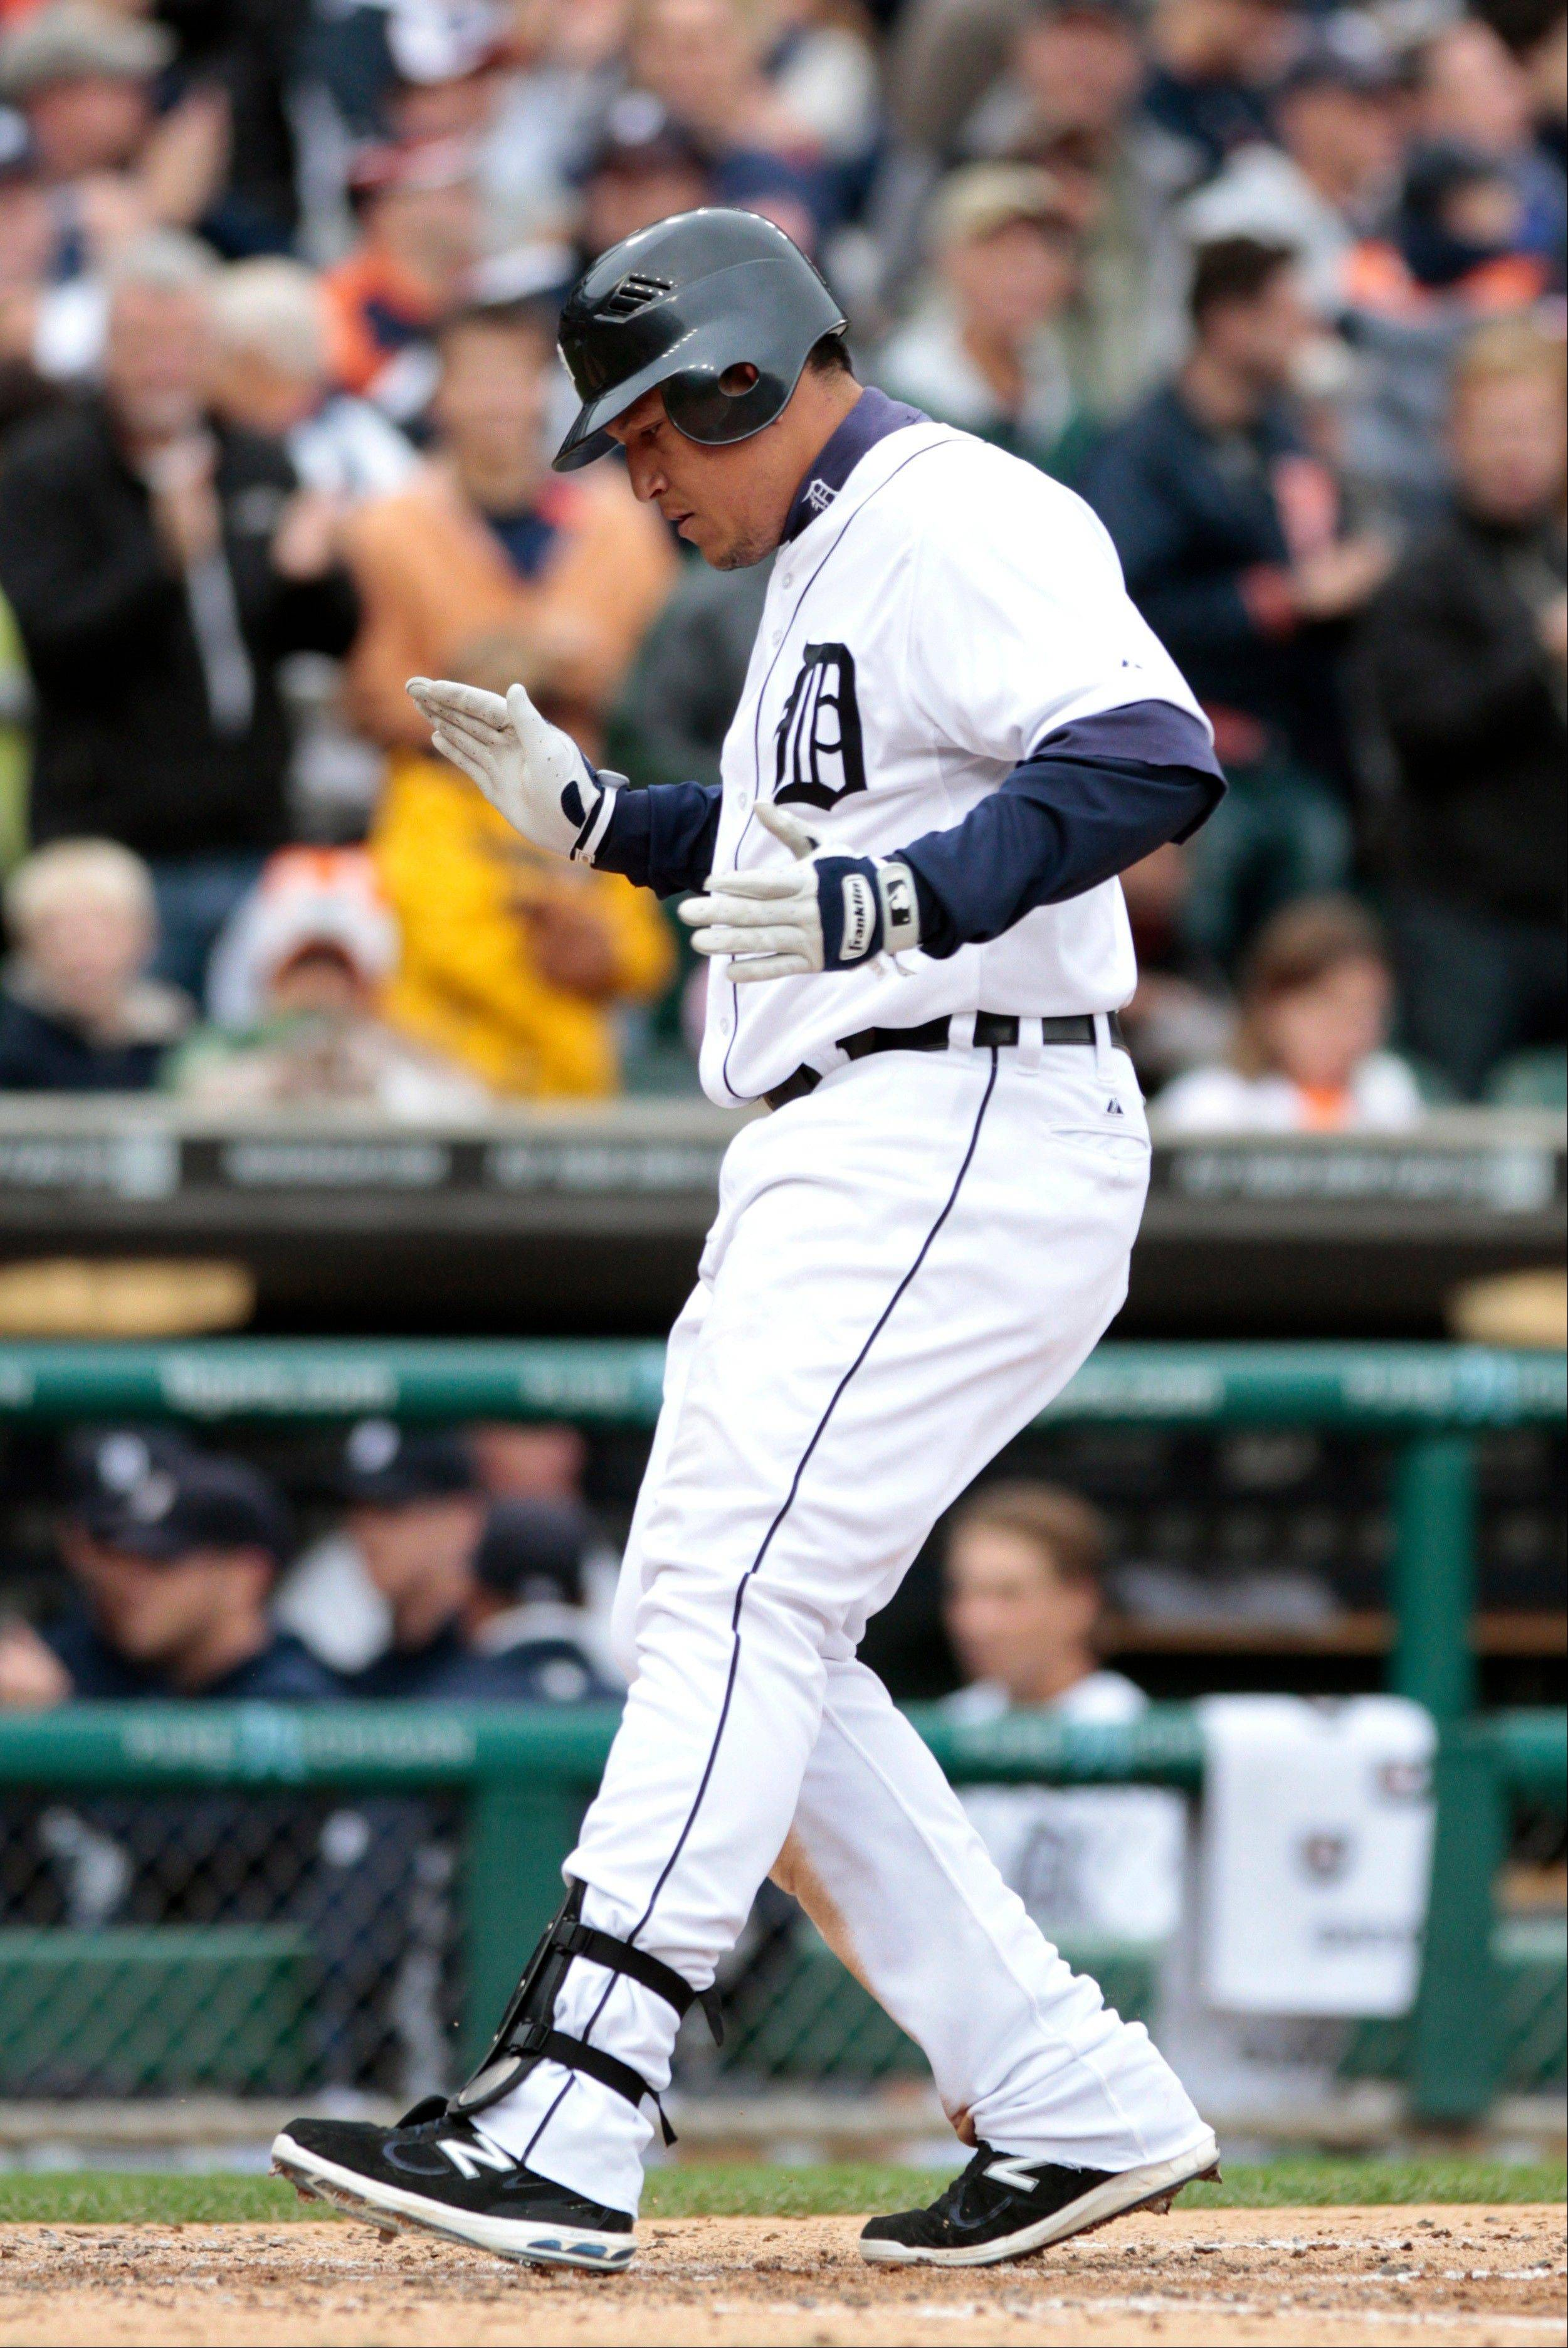 Detroit's Cabrera chasing Triple Crown